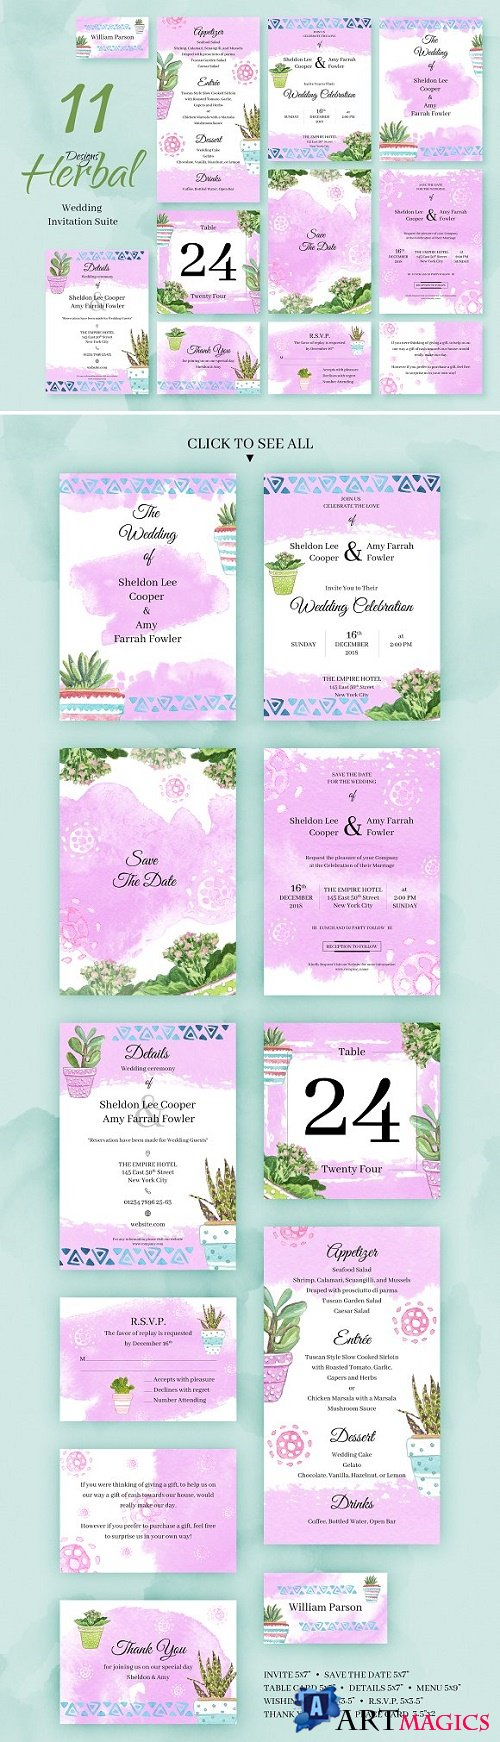 Herbal. Wedding Invitation Package 2219577